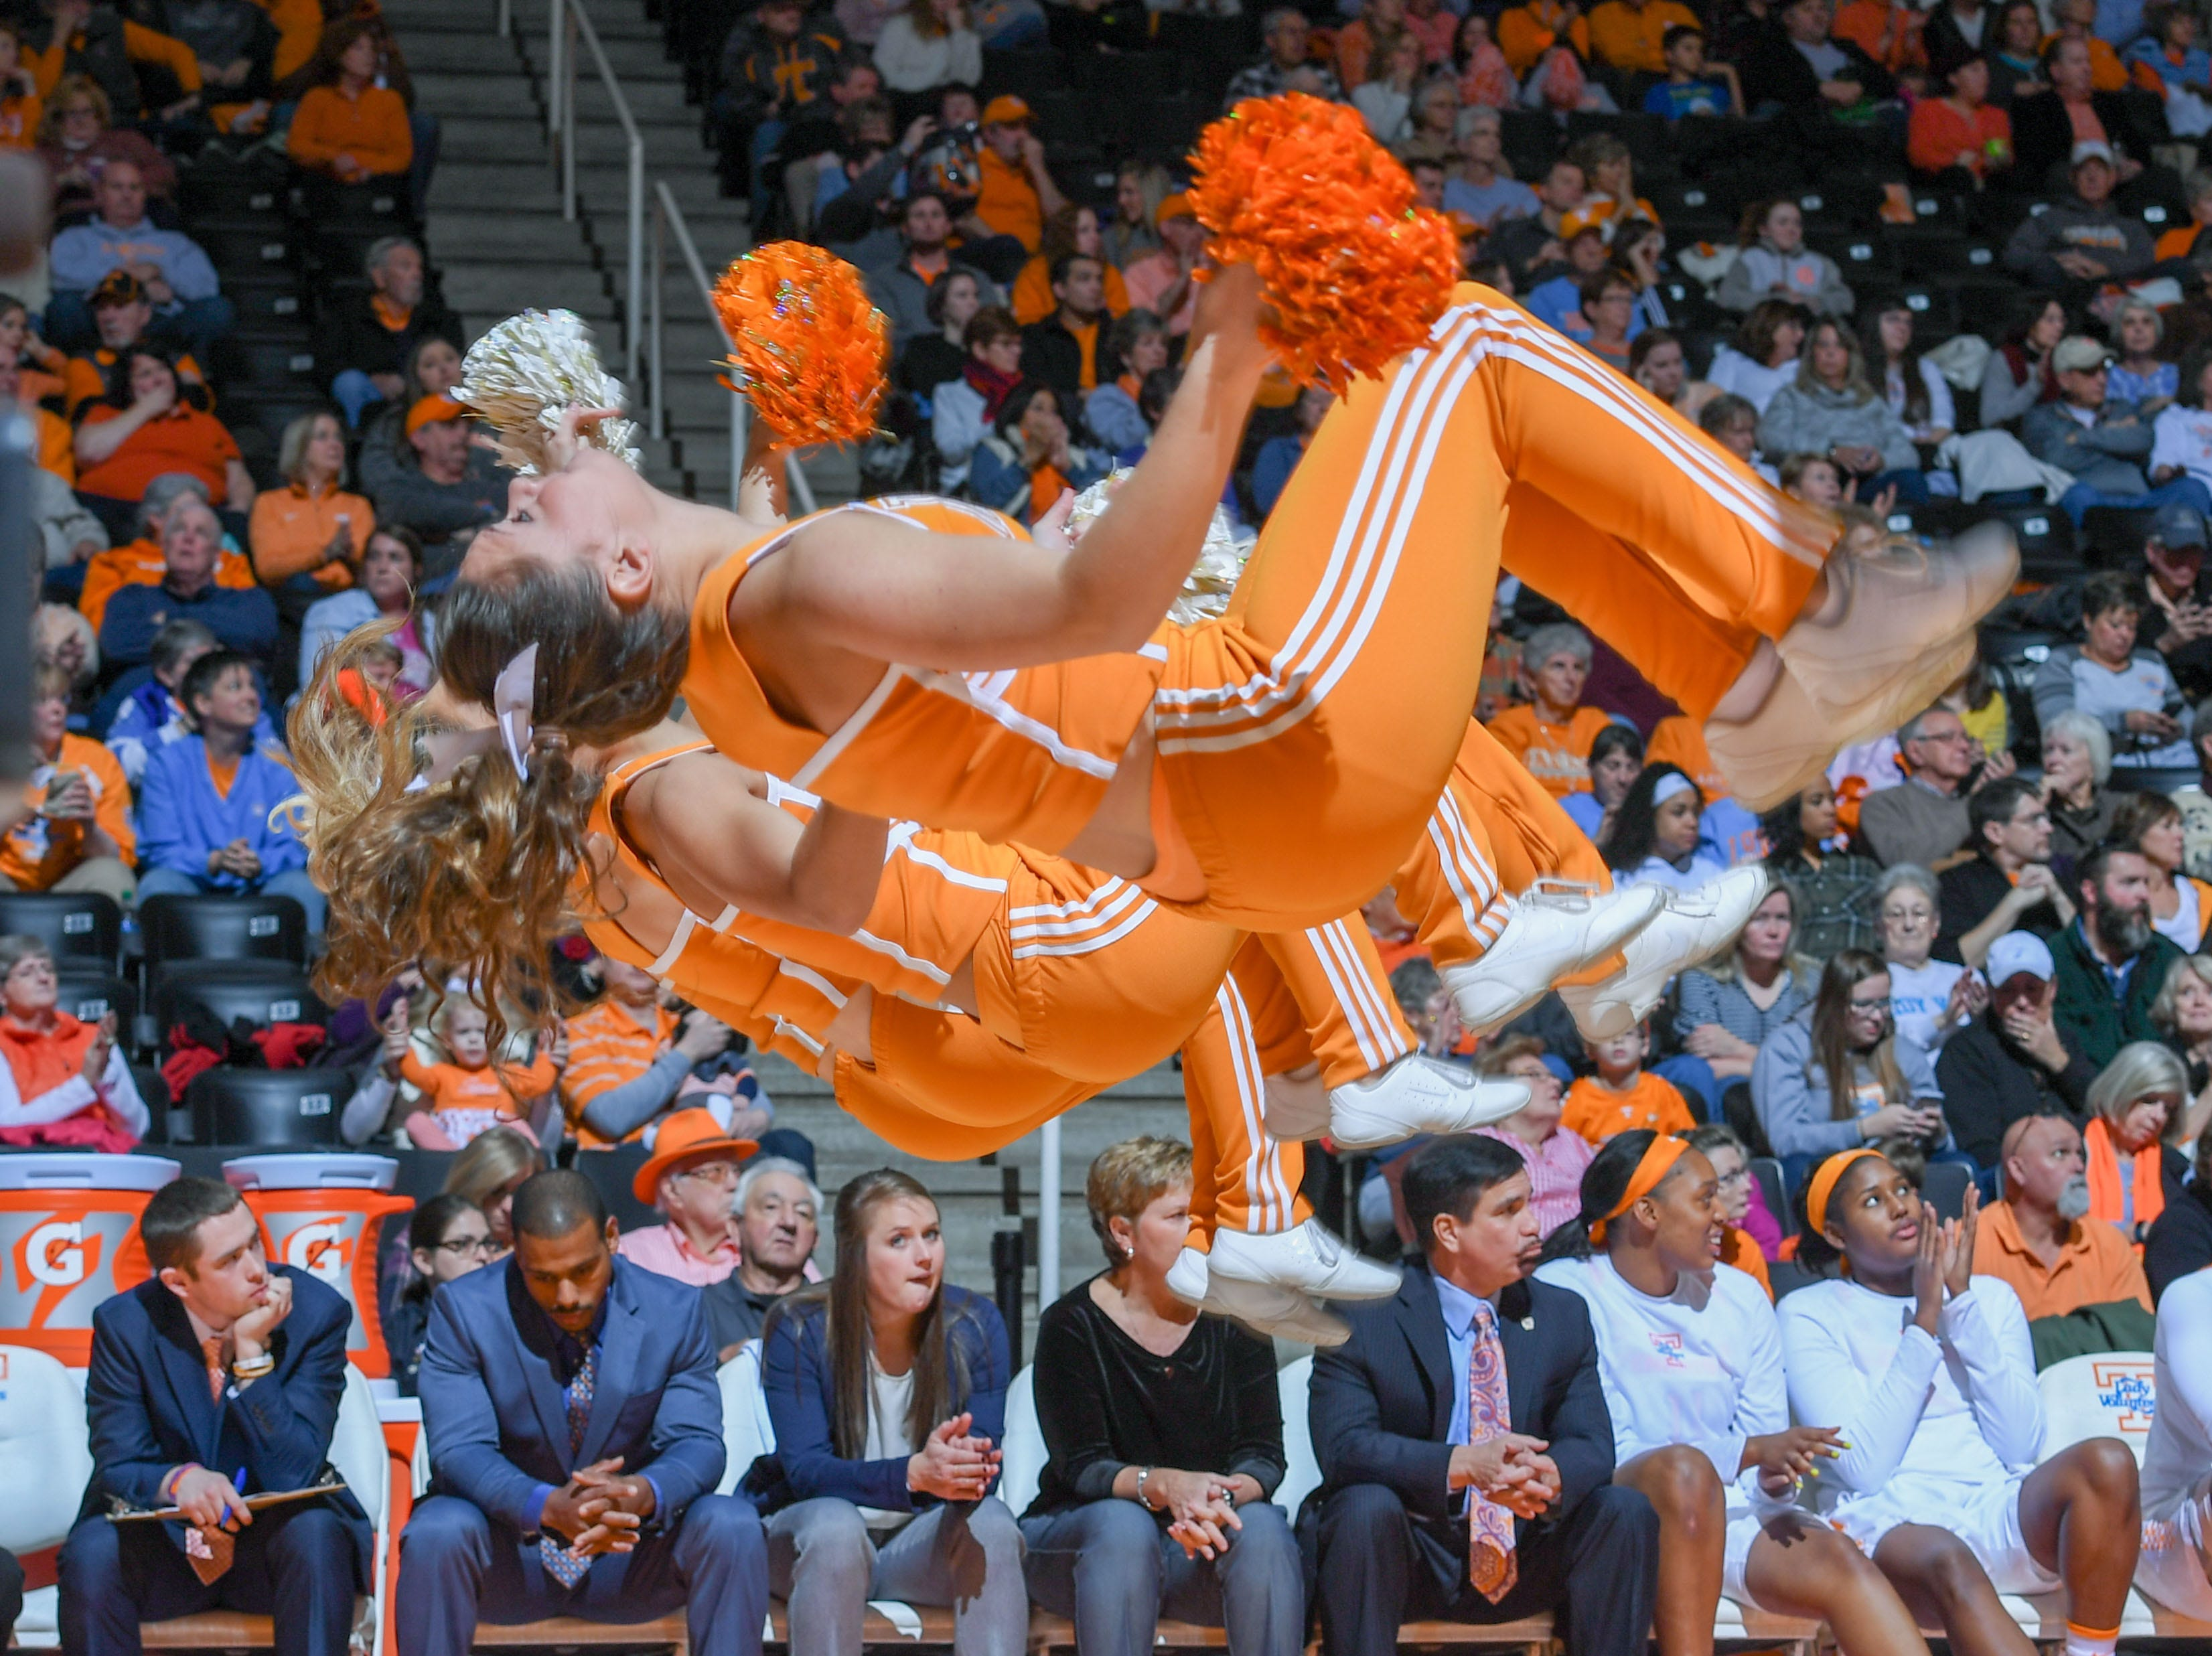 Jan 7, 2018; Knoxville, TN, USA; The Tennessee Lady Volunteers cheerleaders perform during the first half against the Vanderbilt Commodores at Thompson-Boling Arena.